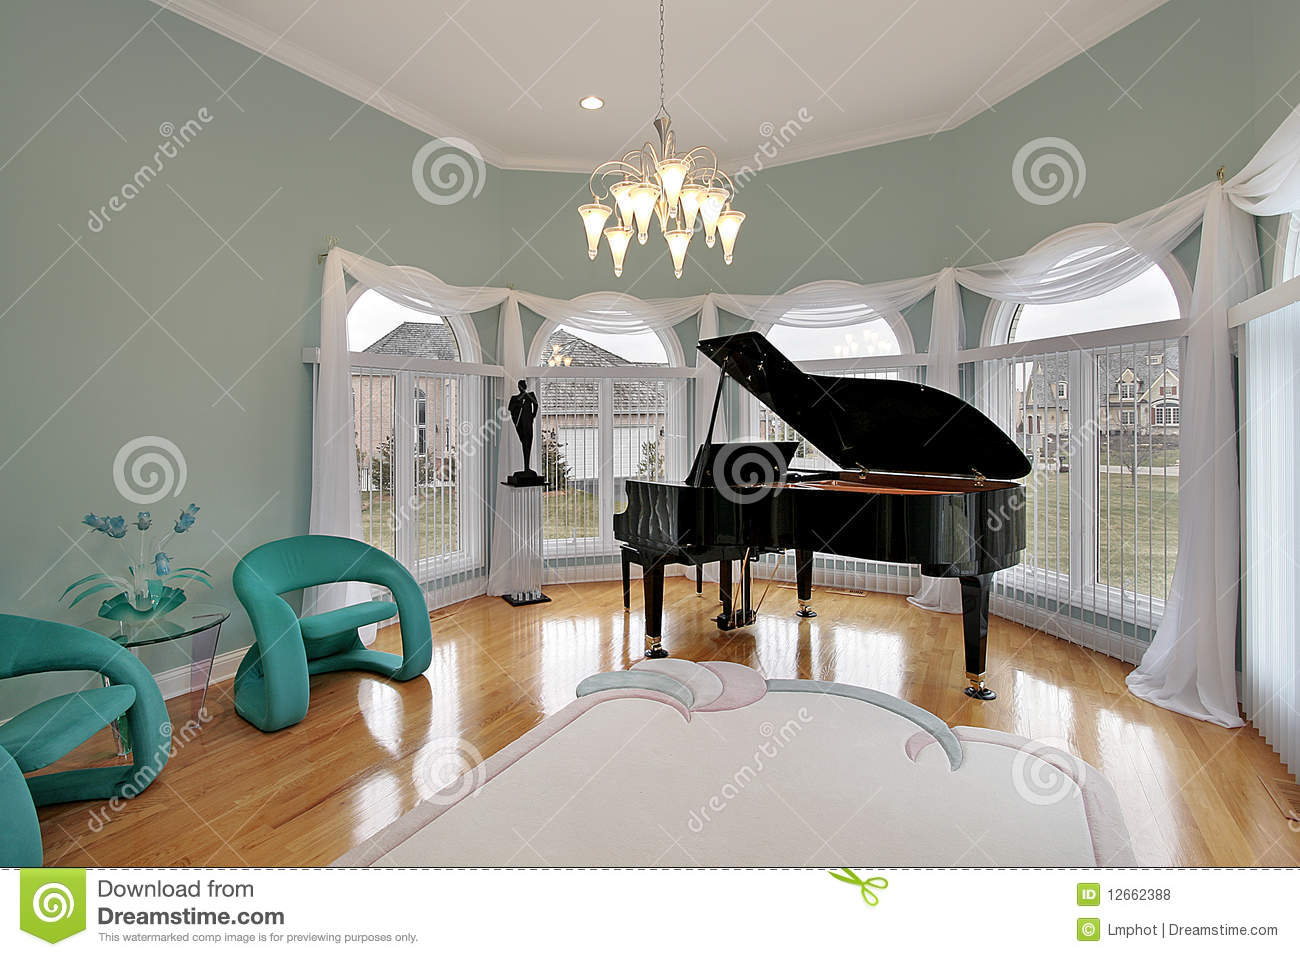 Royalty Free Stock Photos Music Room Green Chairs Image12662388 on Living Room Interior Design